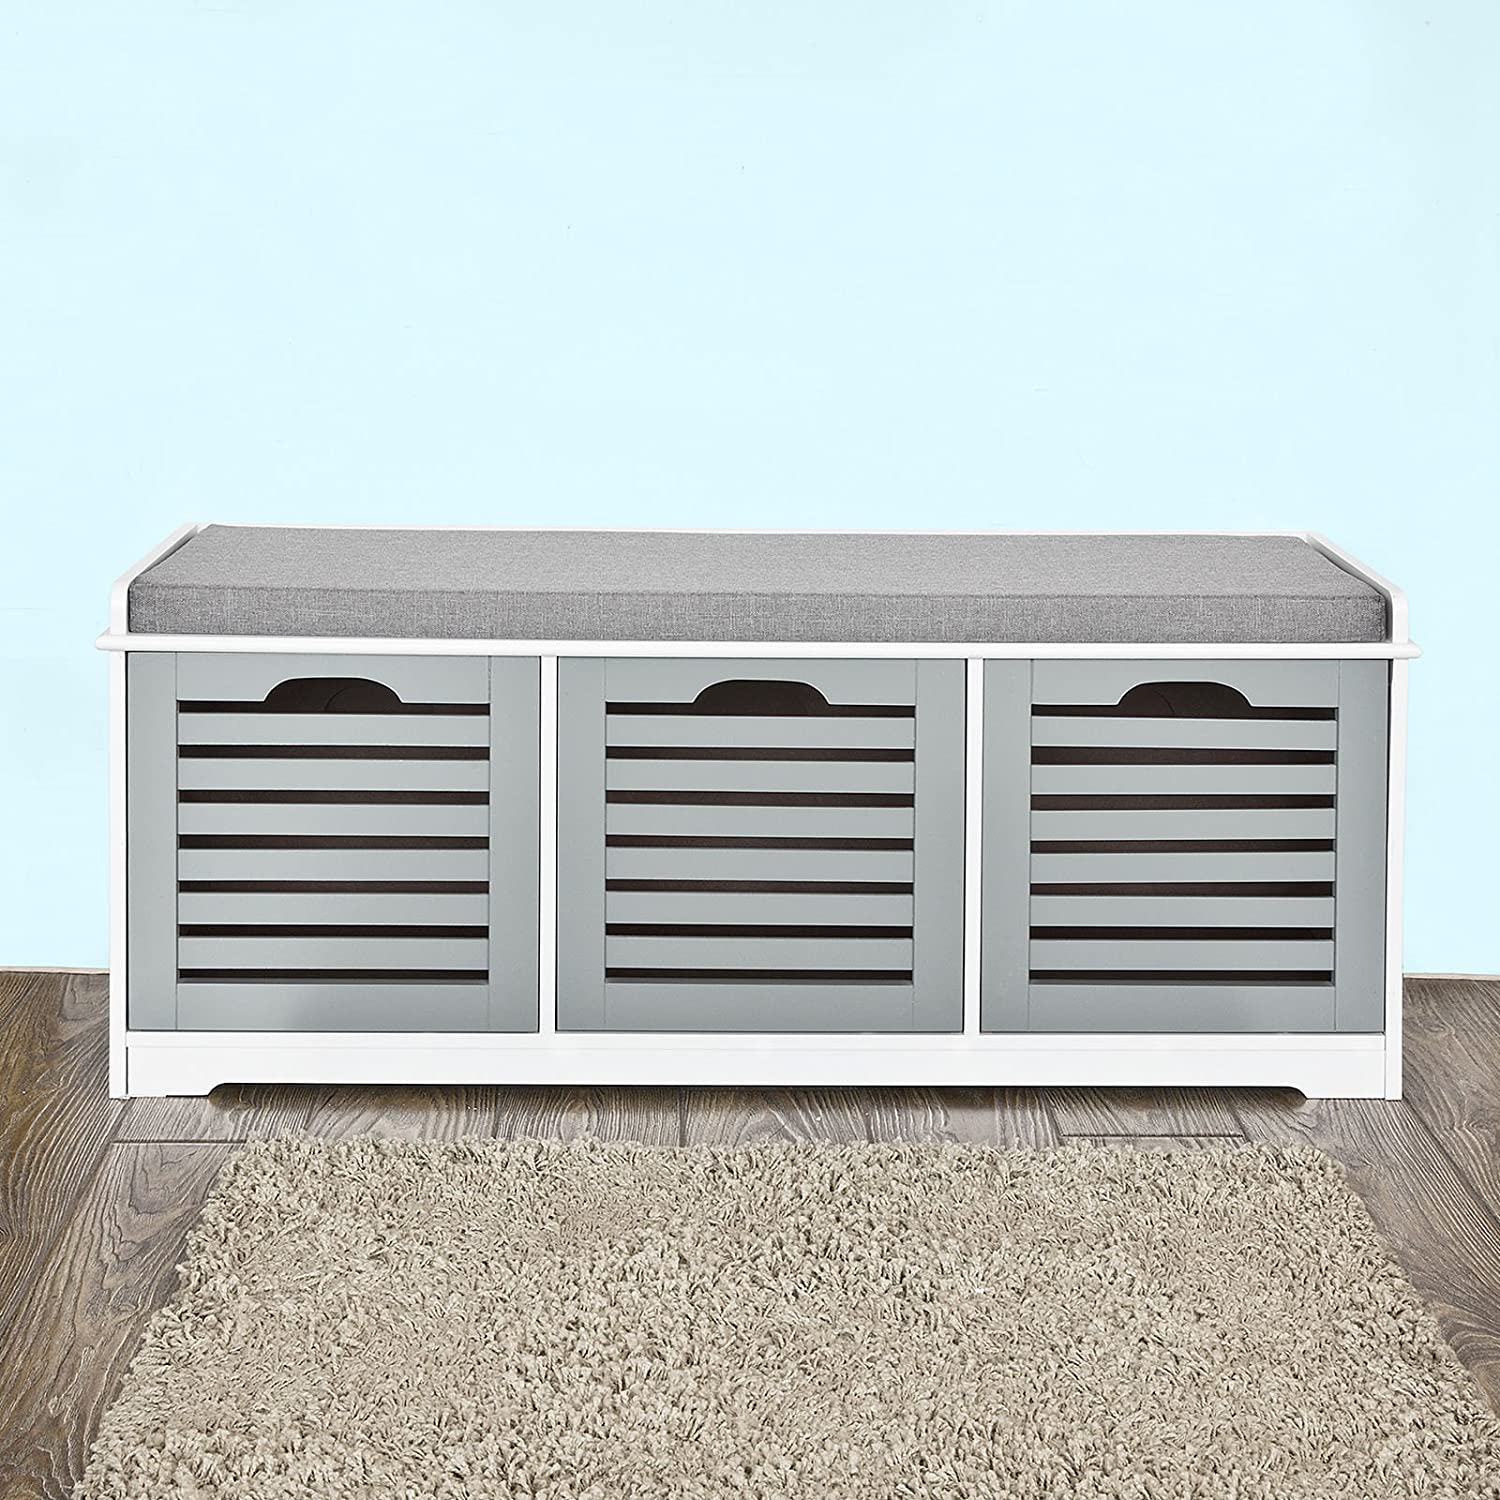 Haotian Storage Bench with 3 Drawers & Padded Seat Cushion, Hallway Bench Shoe Cabinet Mudroom Bench FSR23-HG